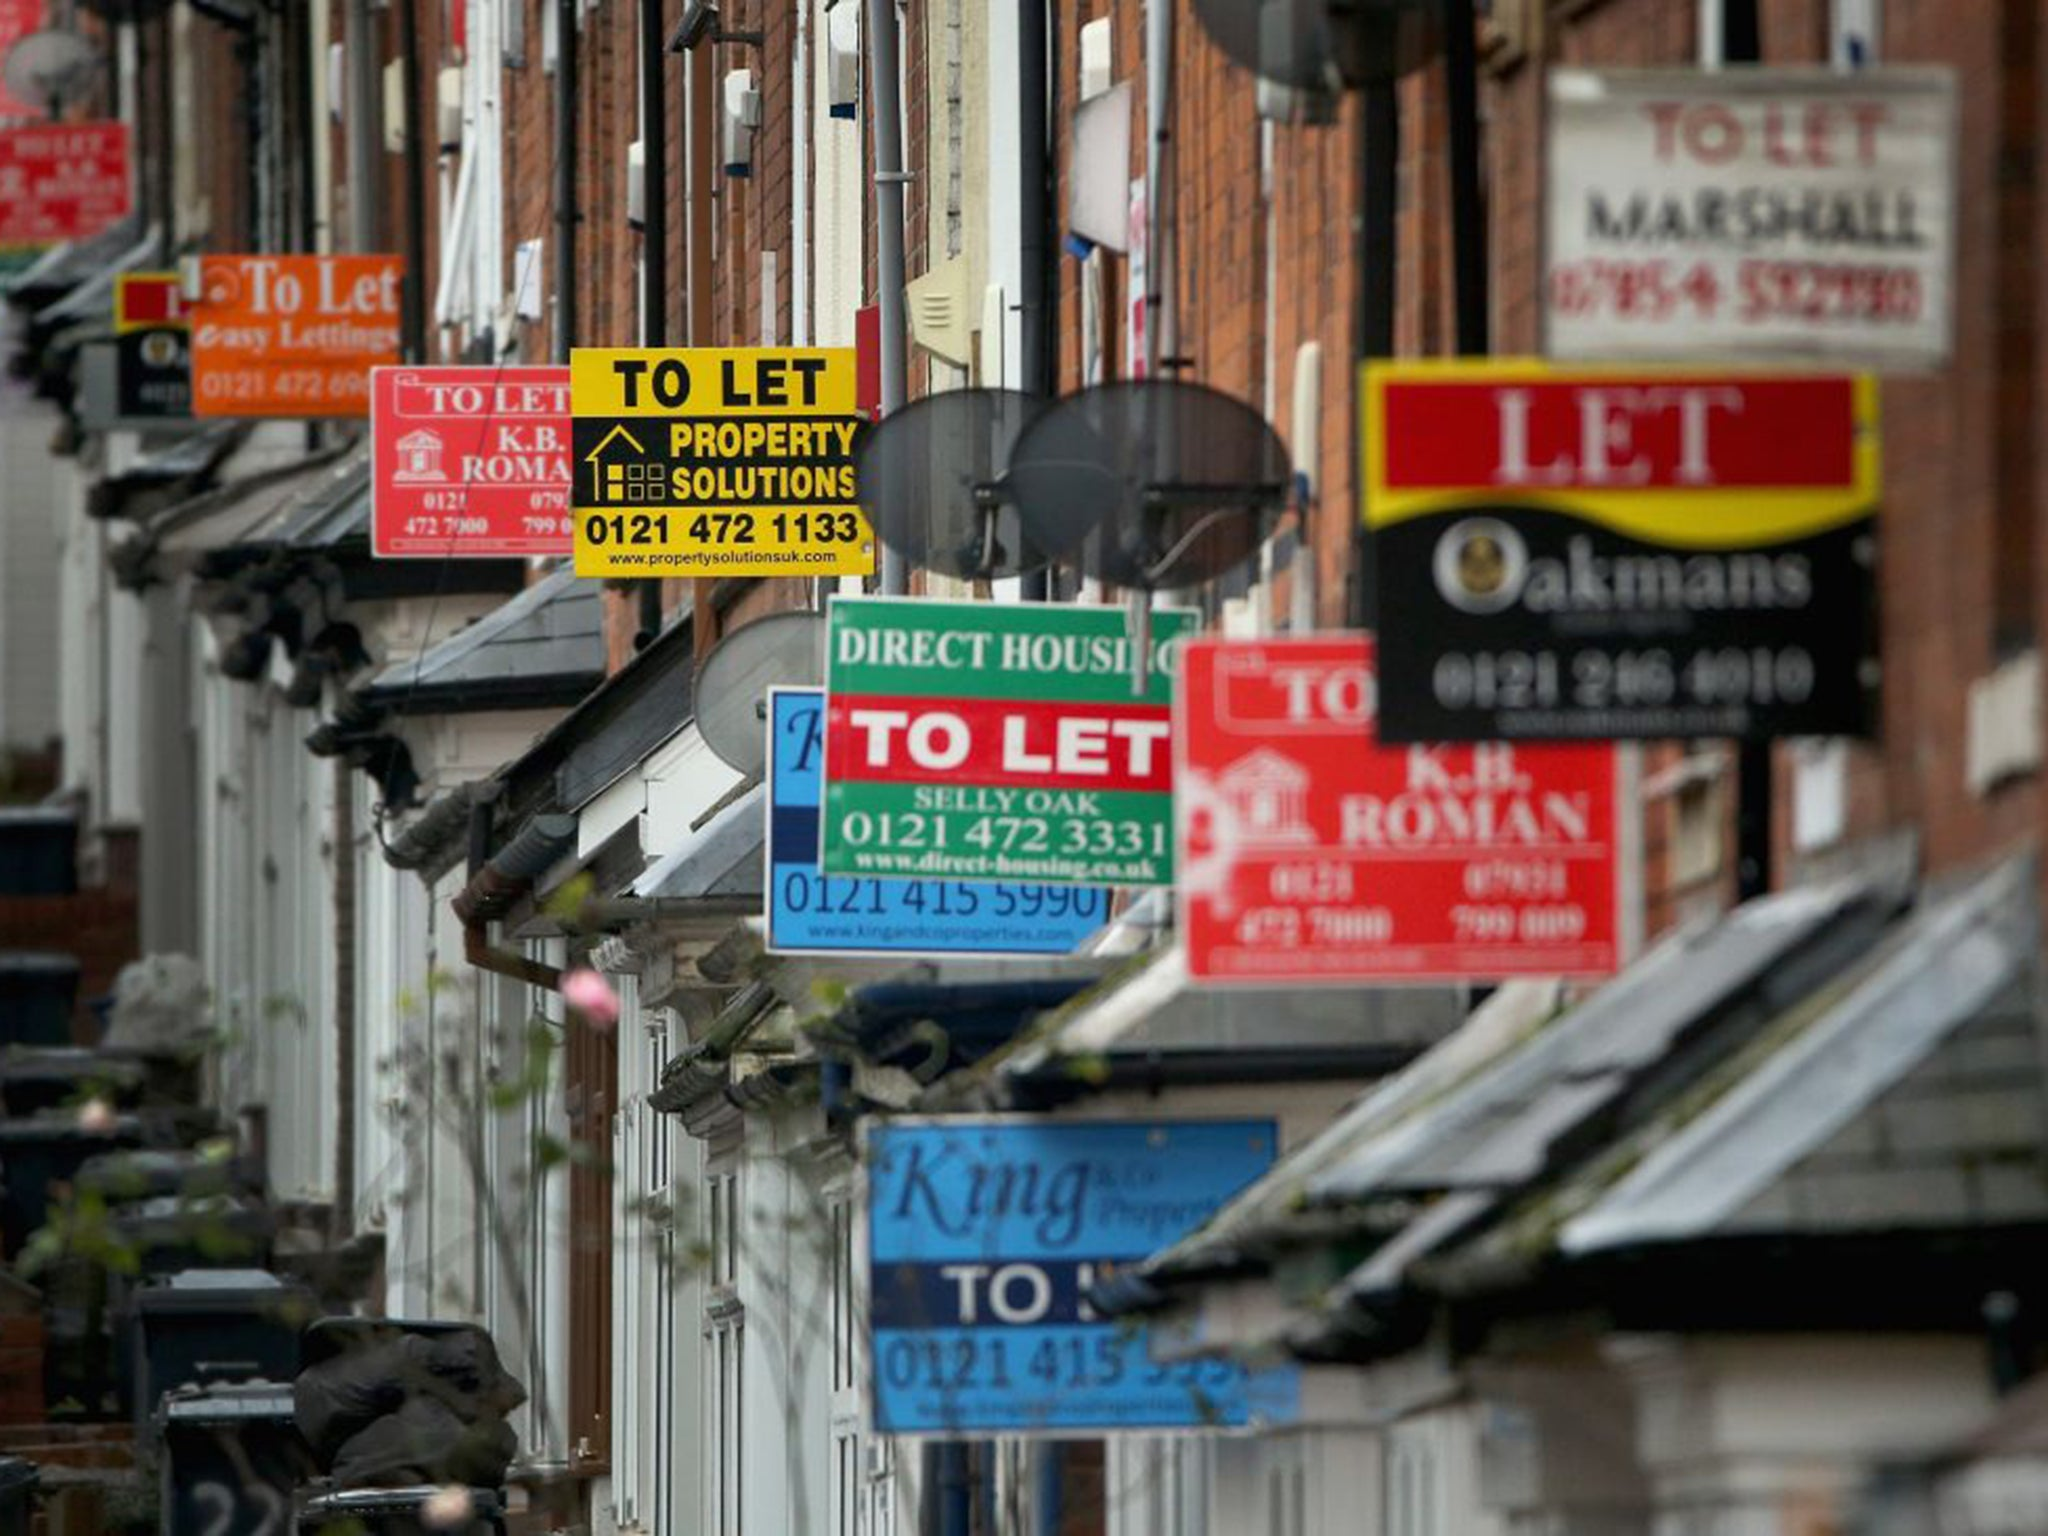 Landlords' immigration checks 'fueling discrimination', report says